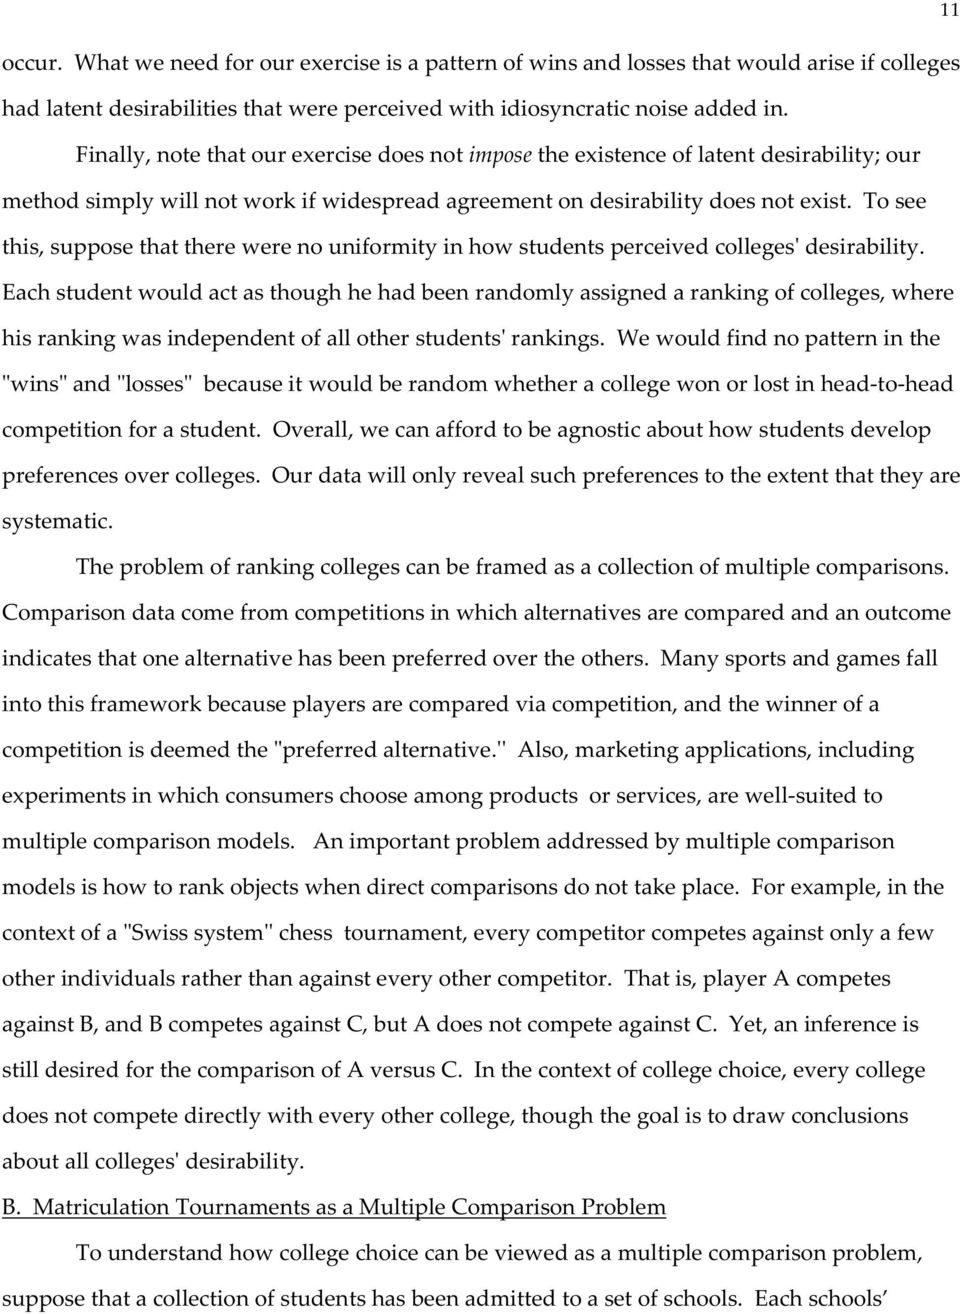 To see this, suppose that there were no uniformity in how students perceived colleges' desirability.